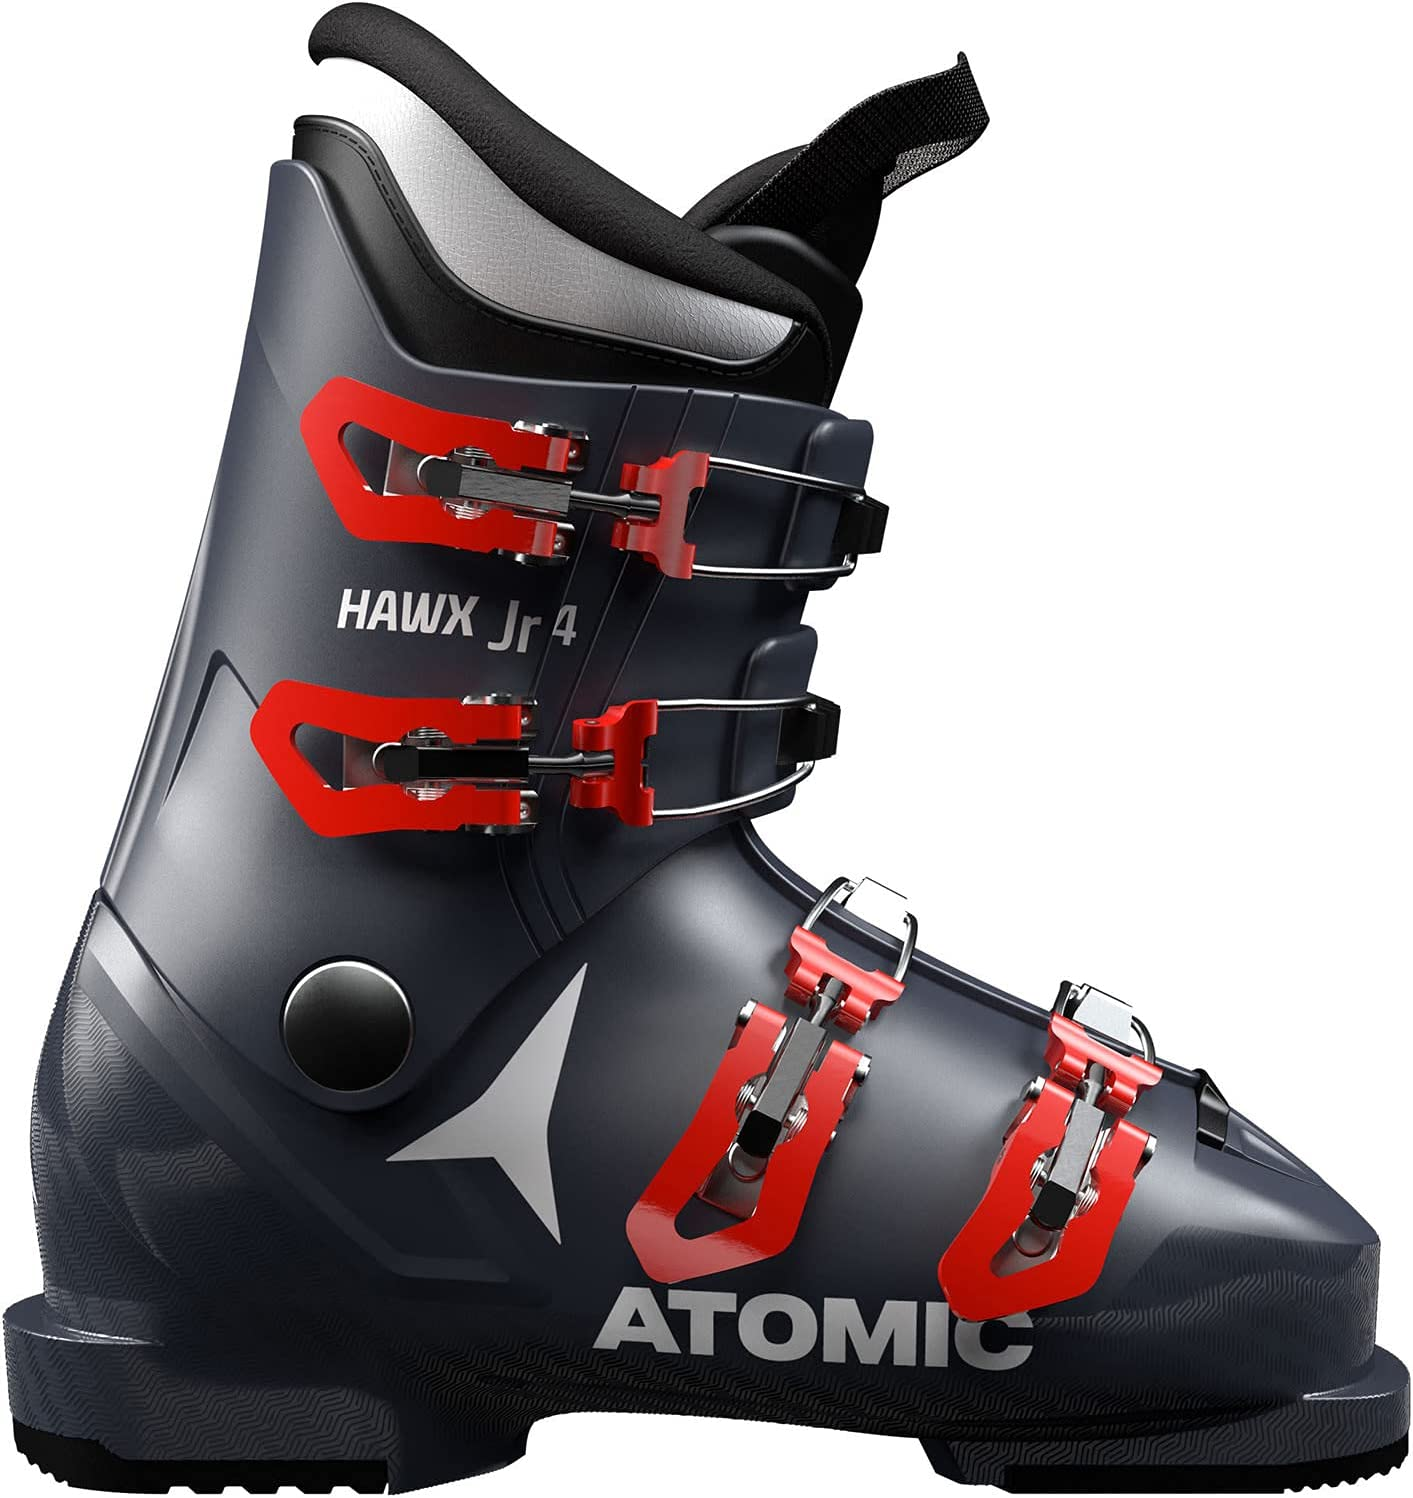 Our shop OFFers the best service Atomic HAWX Jr 3 Boots Ski Kids Max 86% OFF